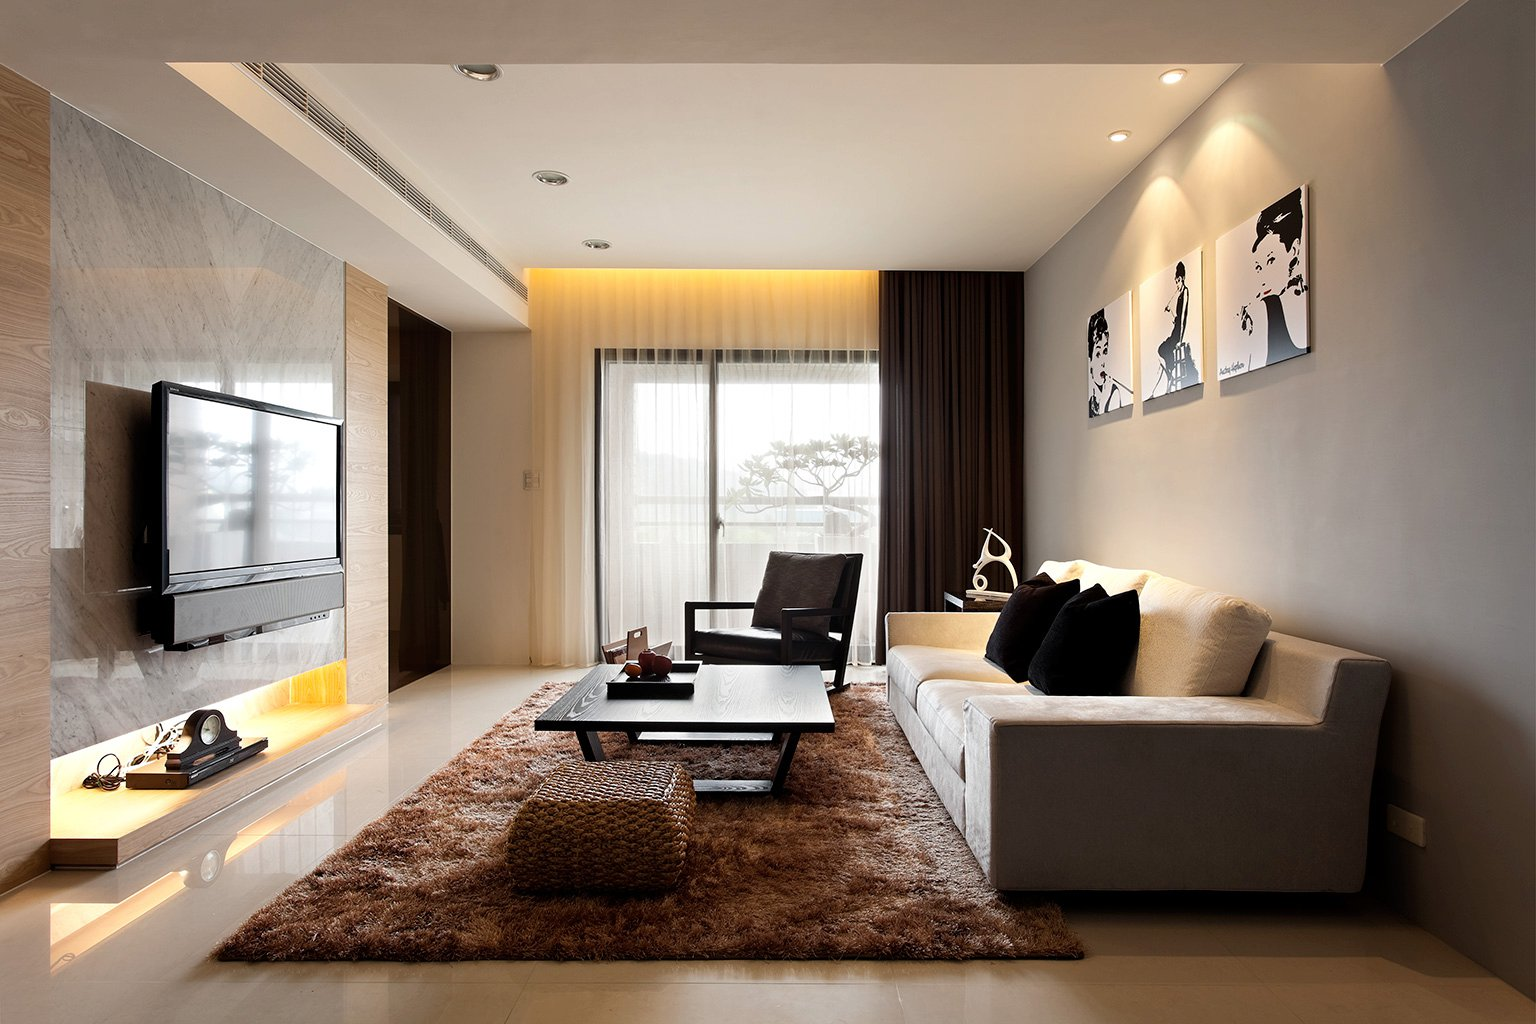 Outstanding Modern Living Room Decor 1536 x 1024 · 238 kB · jpeg